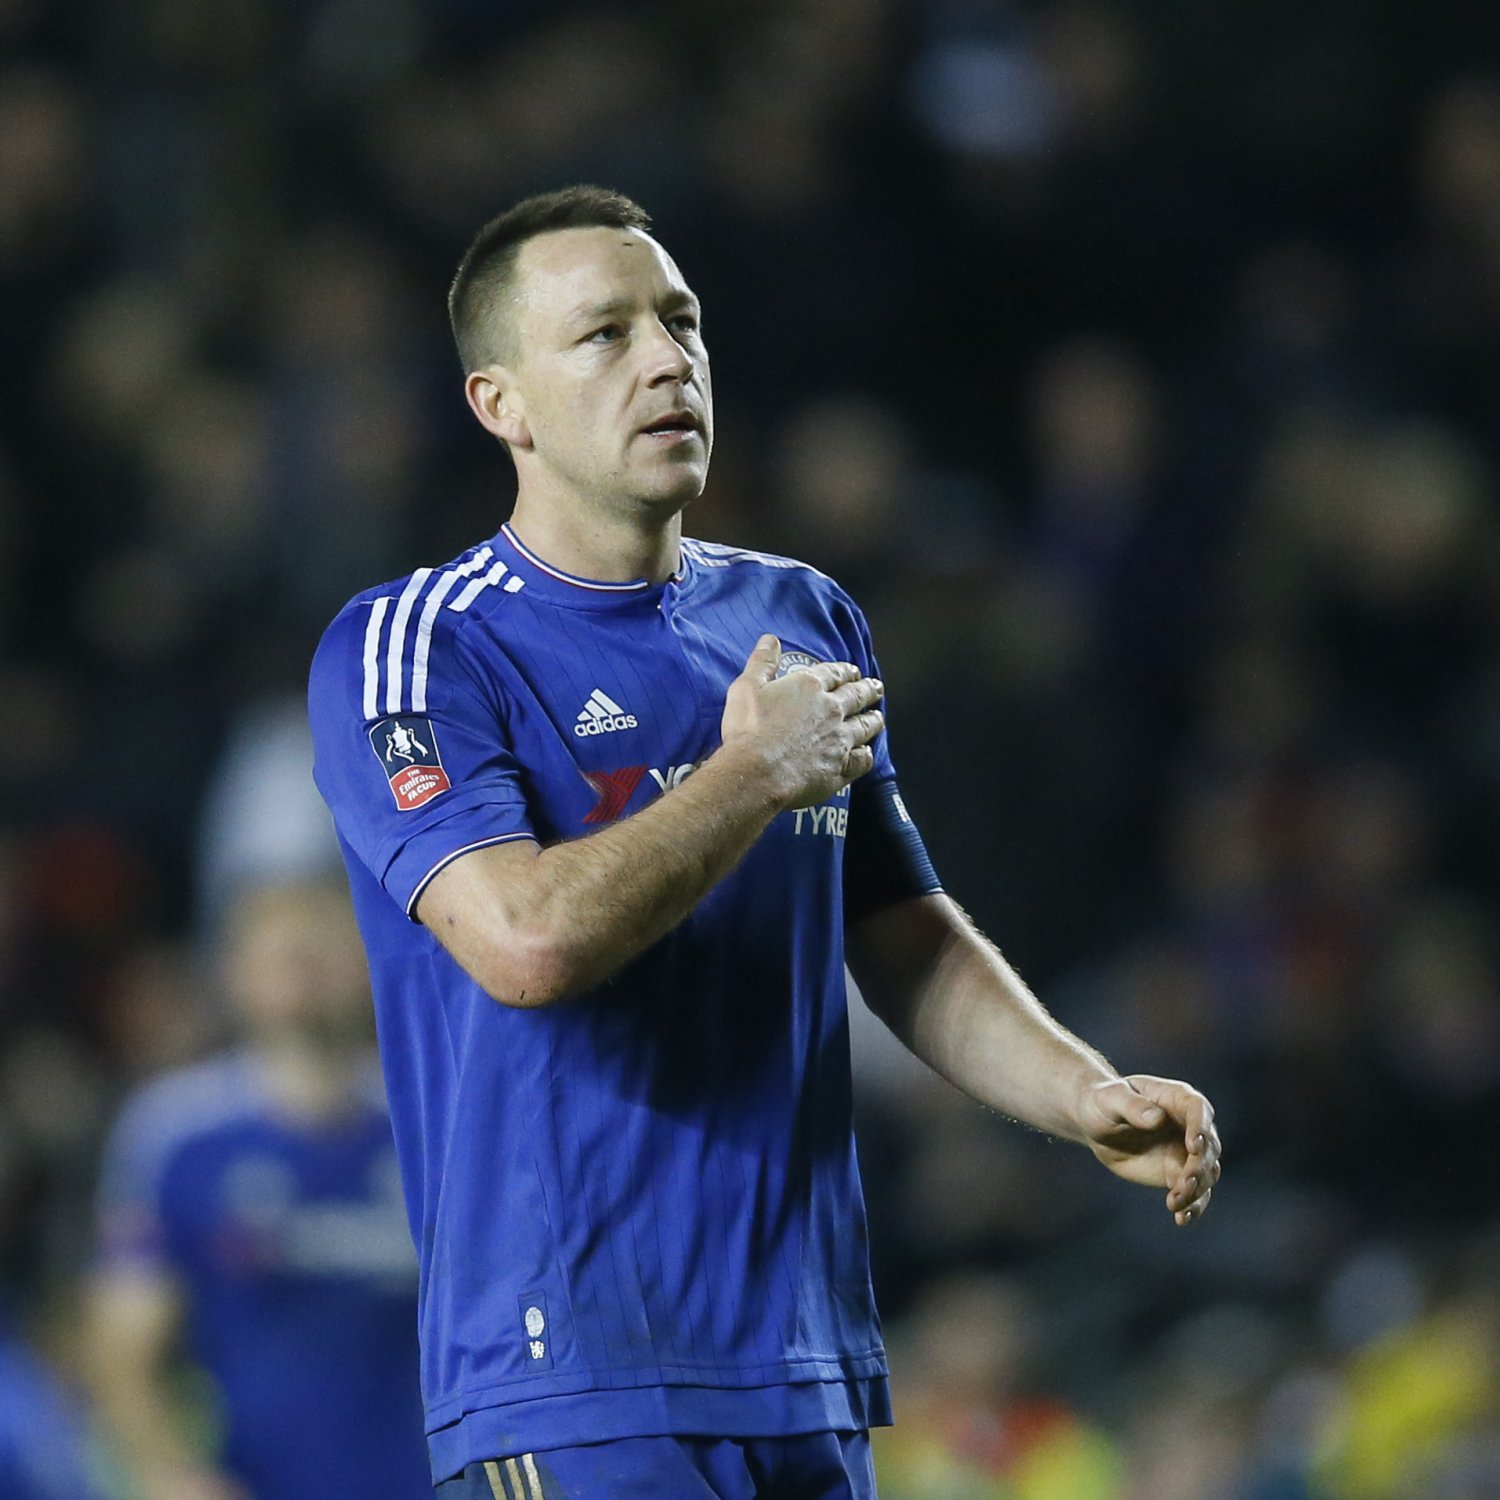 http://bleacherreport.com/articles/2612629-john-terry-to-leave-chelsea-latest-comments-and-reaction